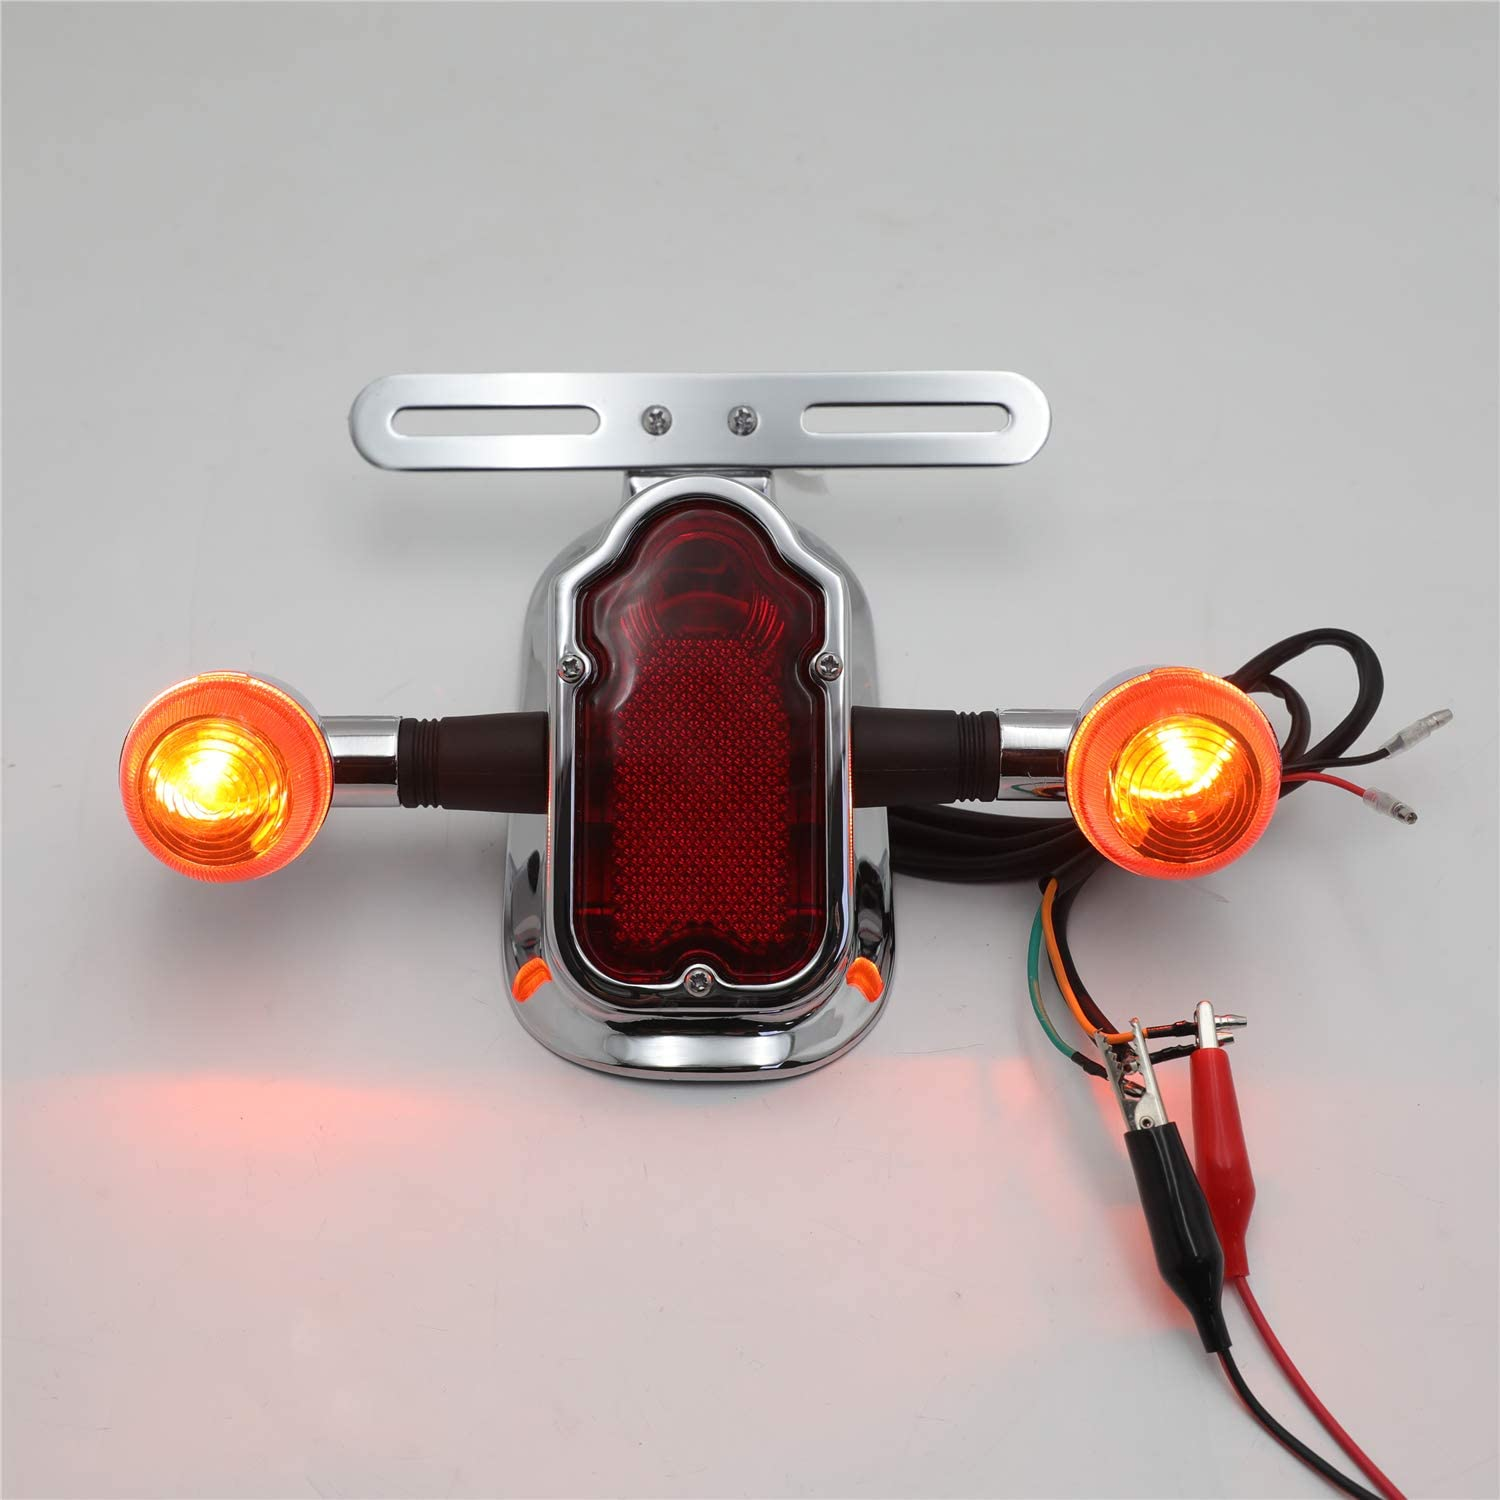 XKMT-MOTORPARTS Cheap SALE Start Free Shipping Cheap Bargain Gift Motorcycle Chrome Amber Metal Tombstone Brake T